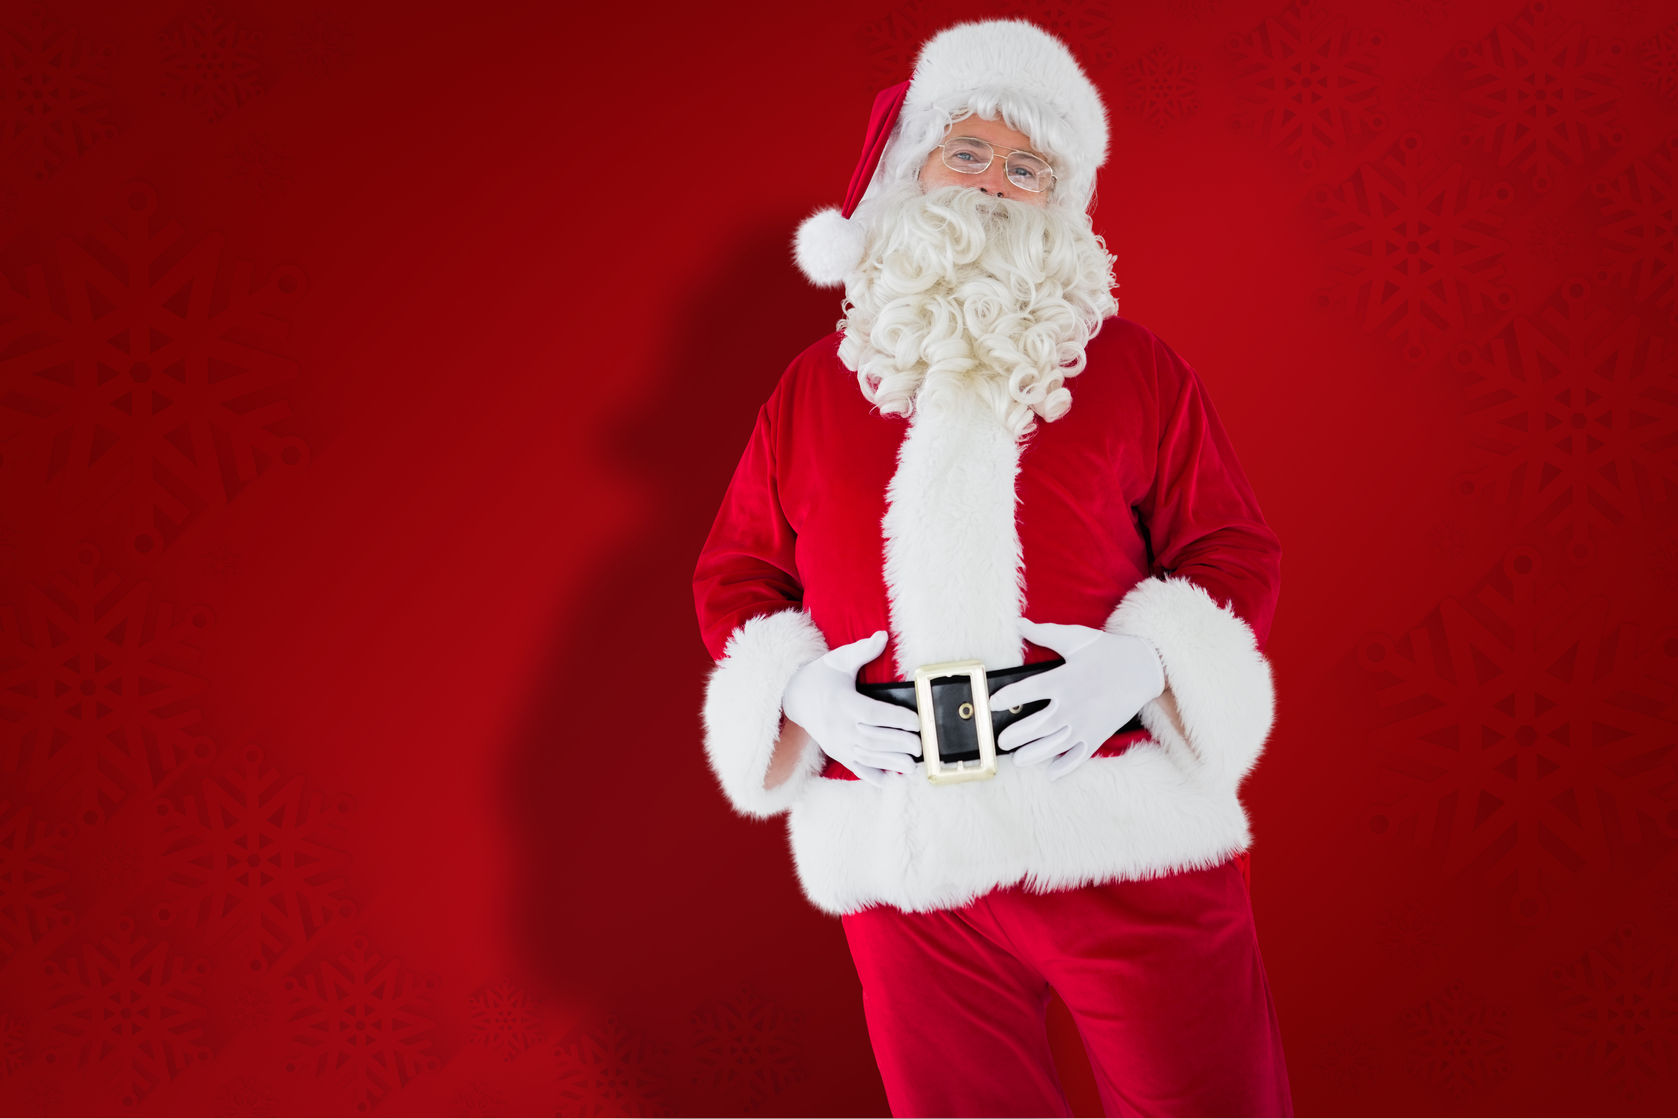 Business leaders can learn valuable lessons from Santa's resonant voice